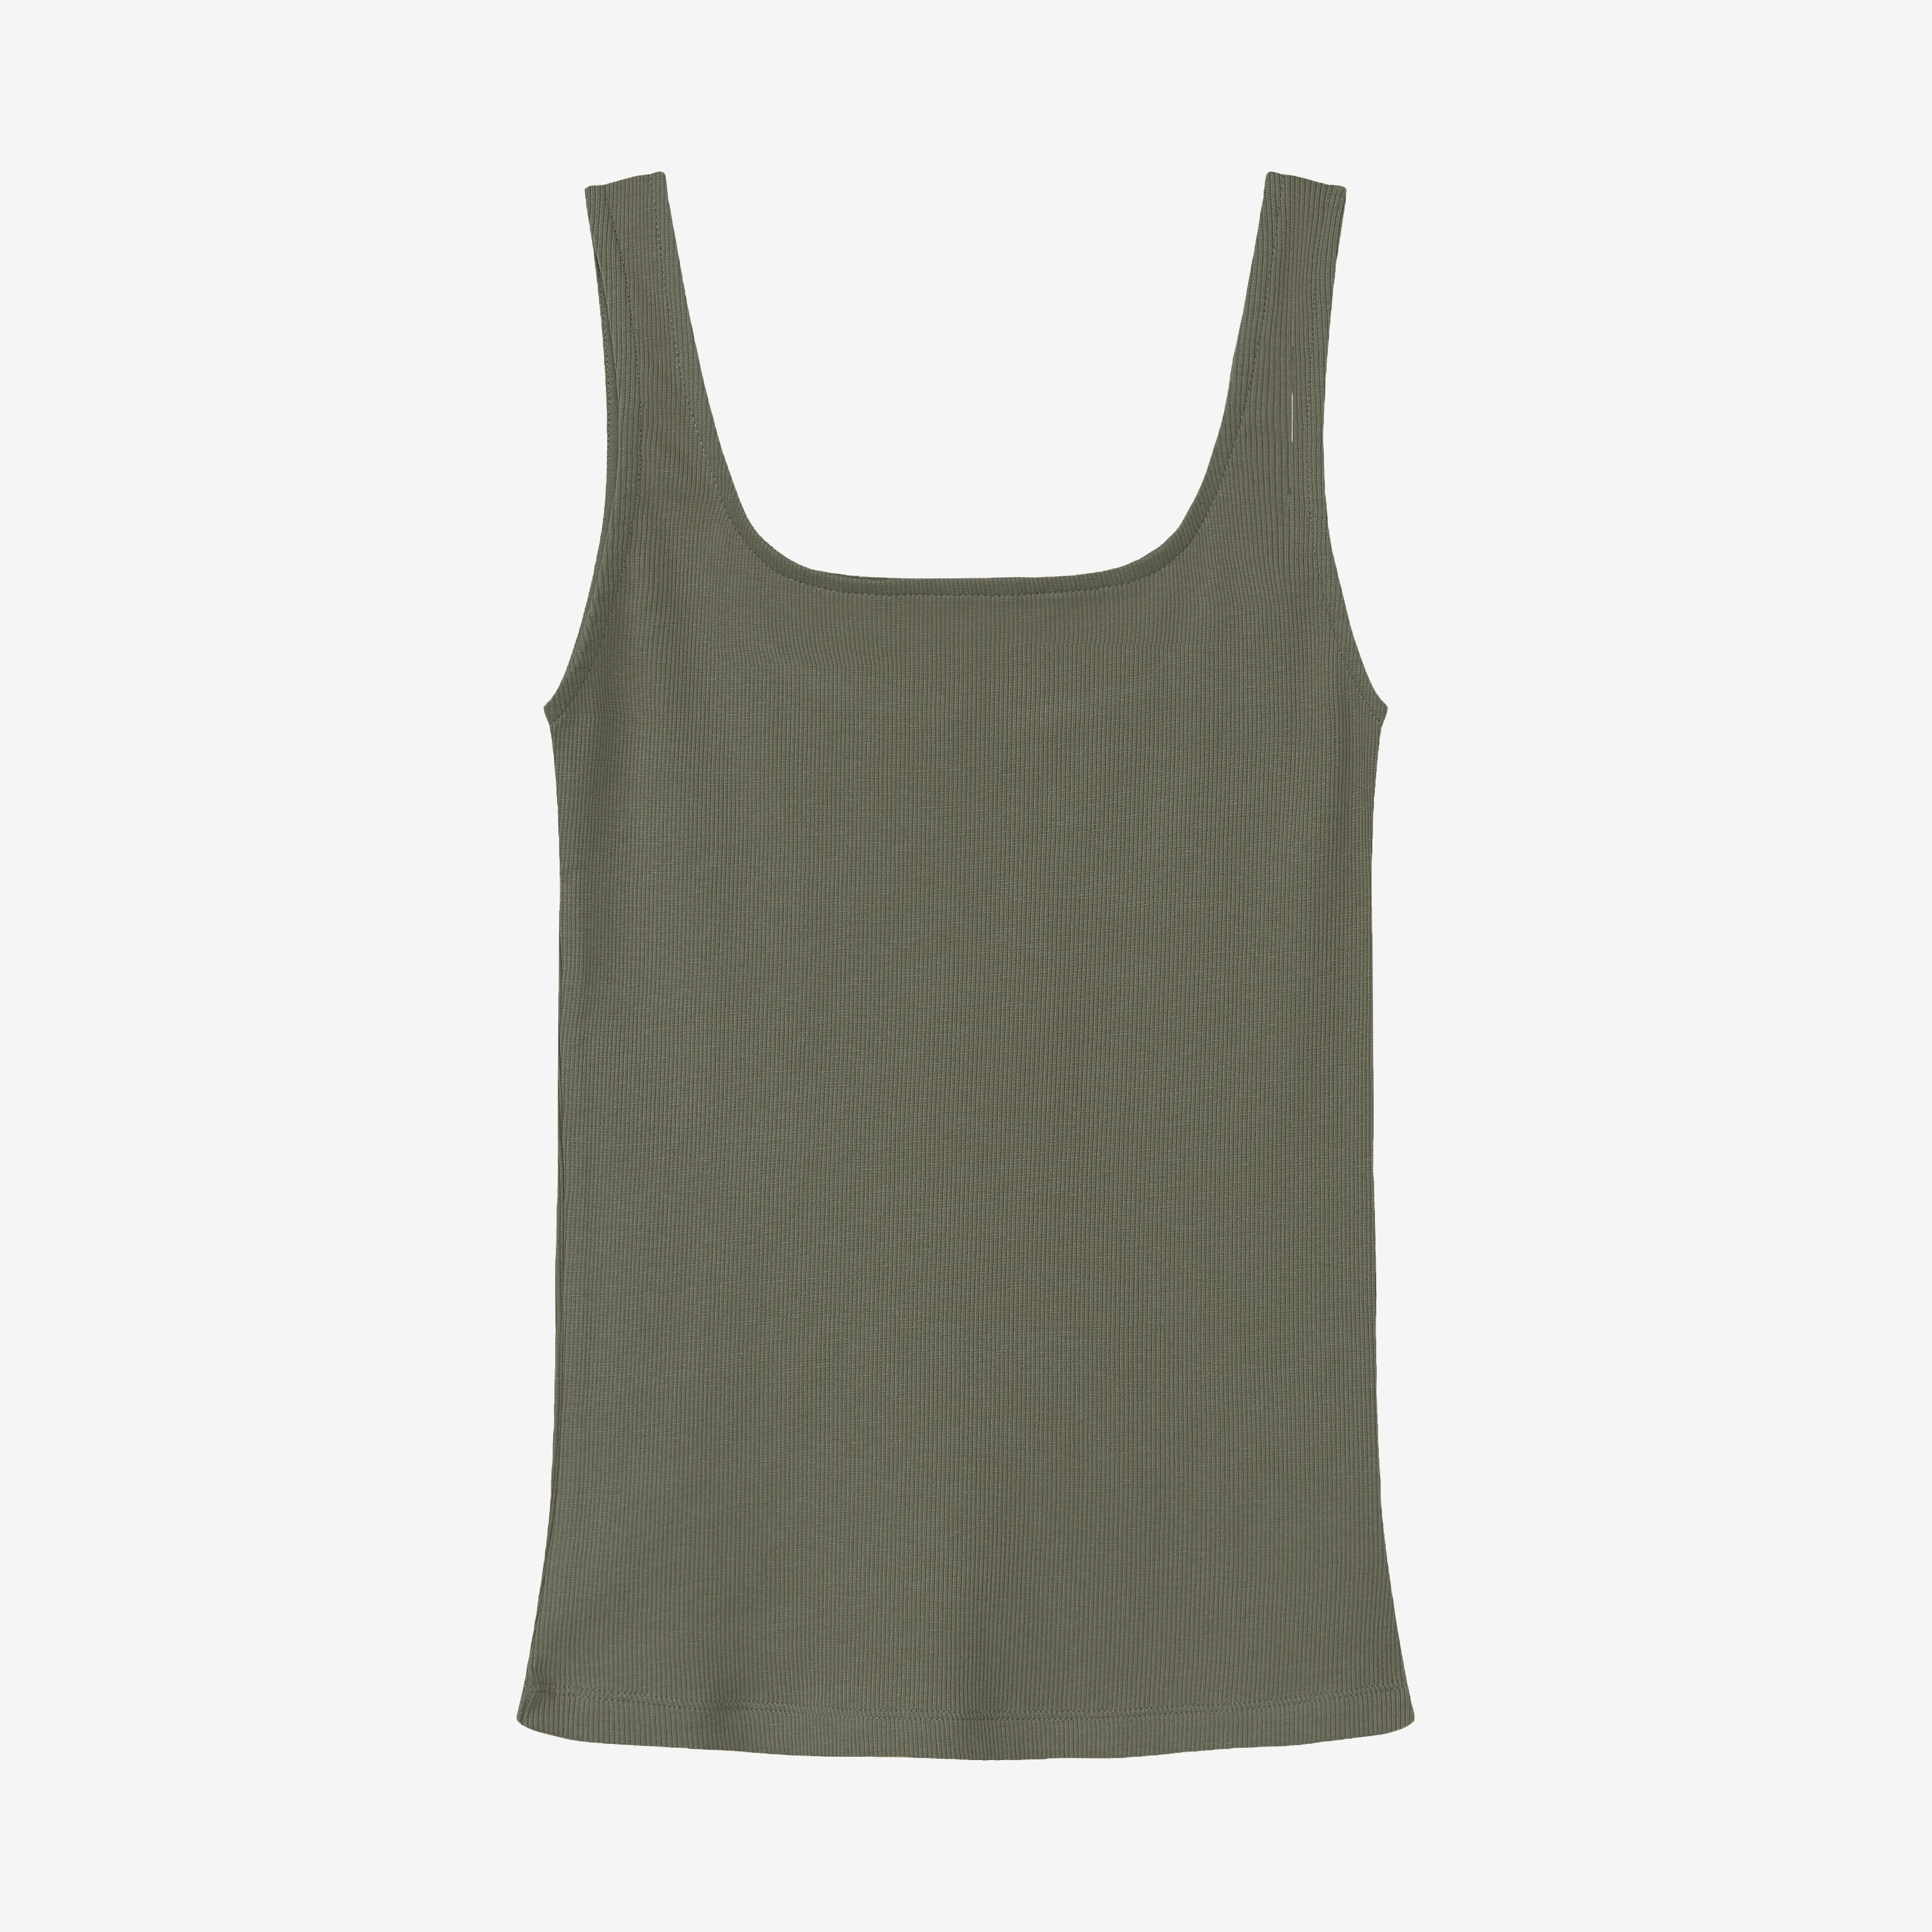 632-40_Tank_olive-green_CO-A